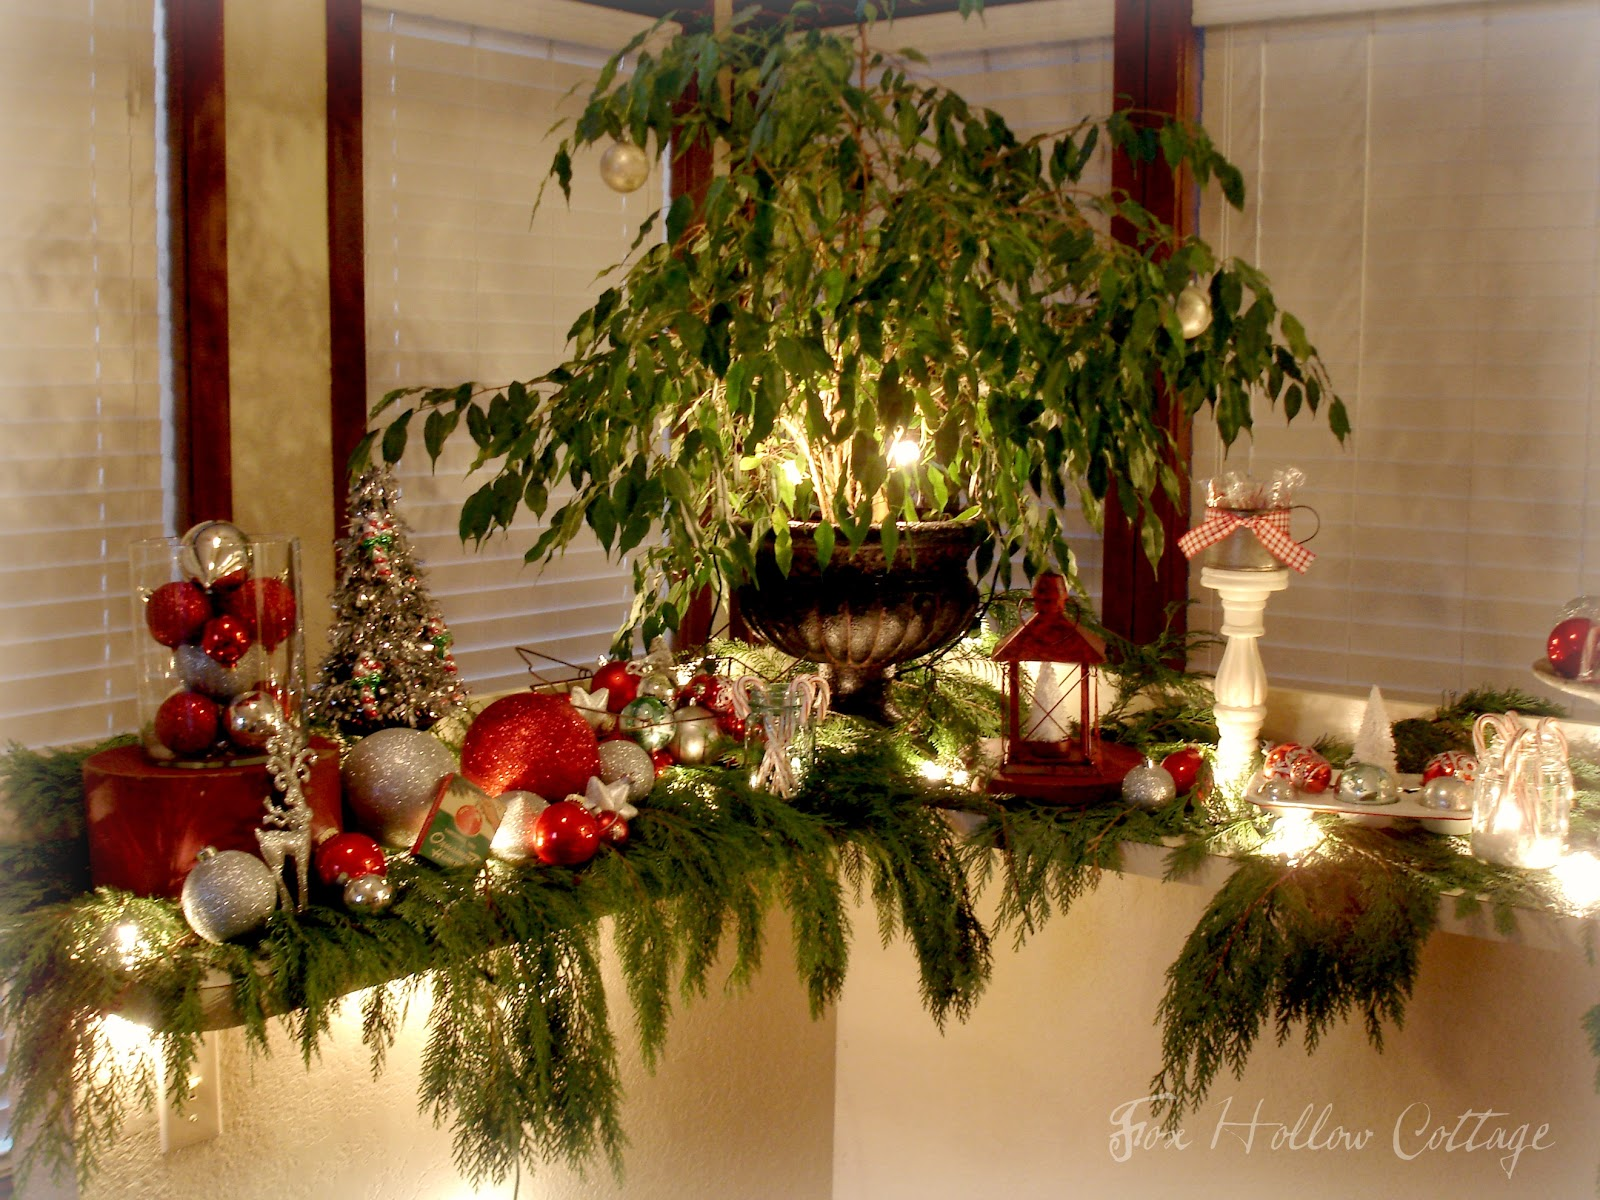 Christmas Decorating Thrifty Christmas Decorating With Cedar Boughs Fox Hollow Cottage